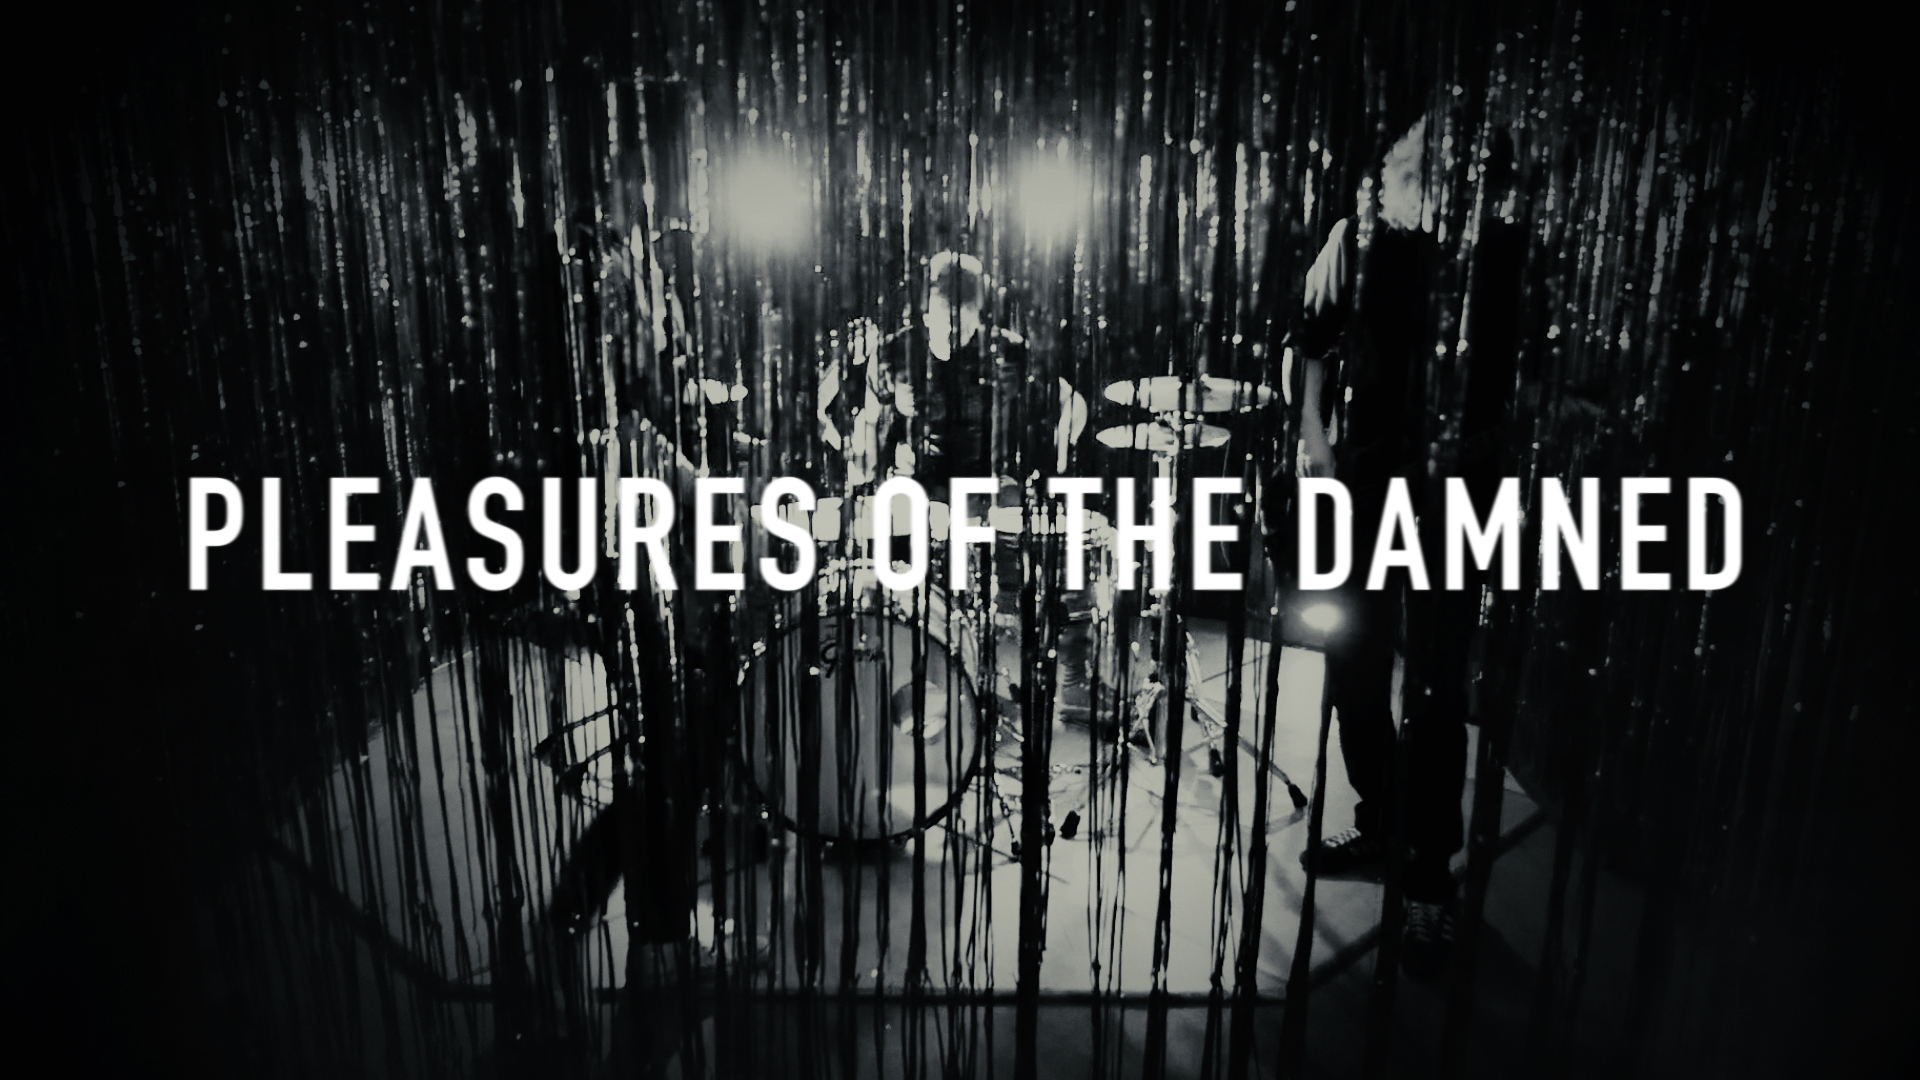 Pleasures of the Damned